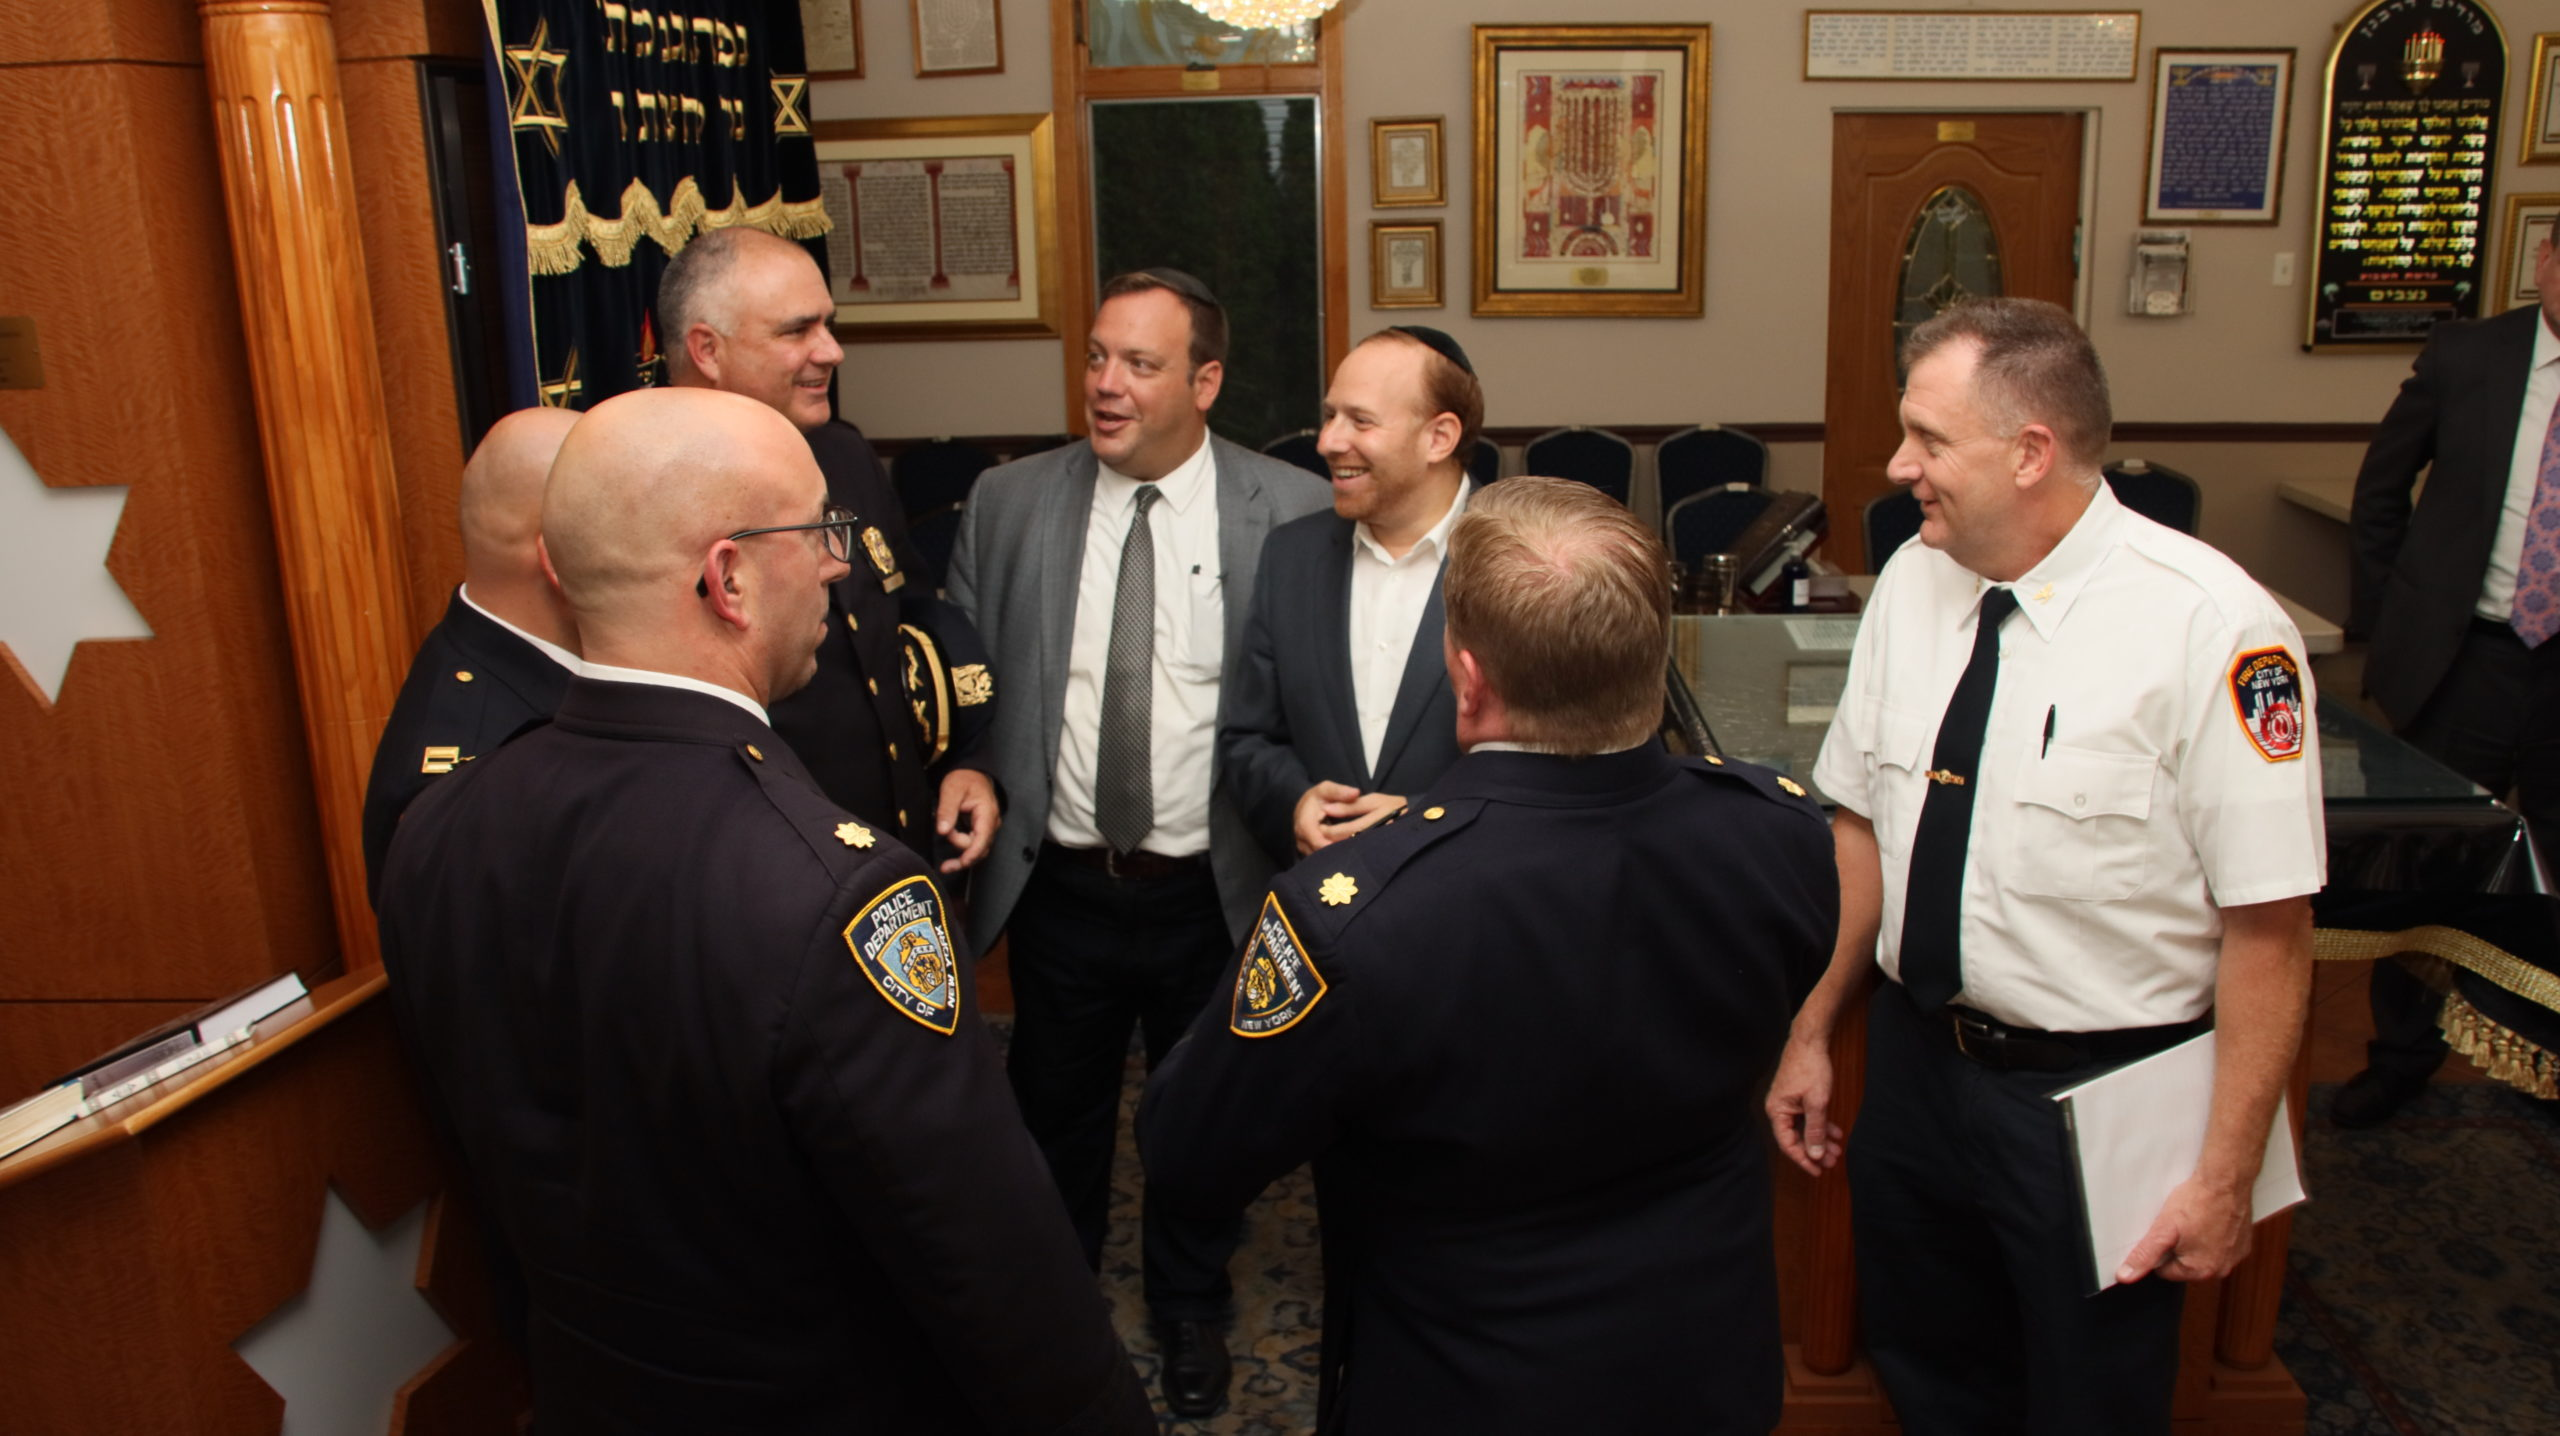 Council of Jewish Organizations – Hosts NYPD Leadership for Pre-Rosh Hashanah Security Meeting